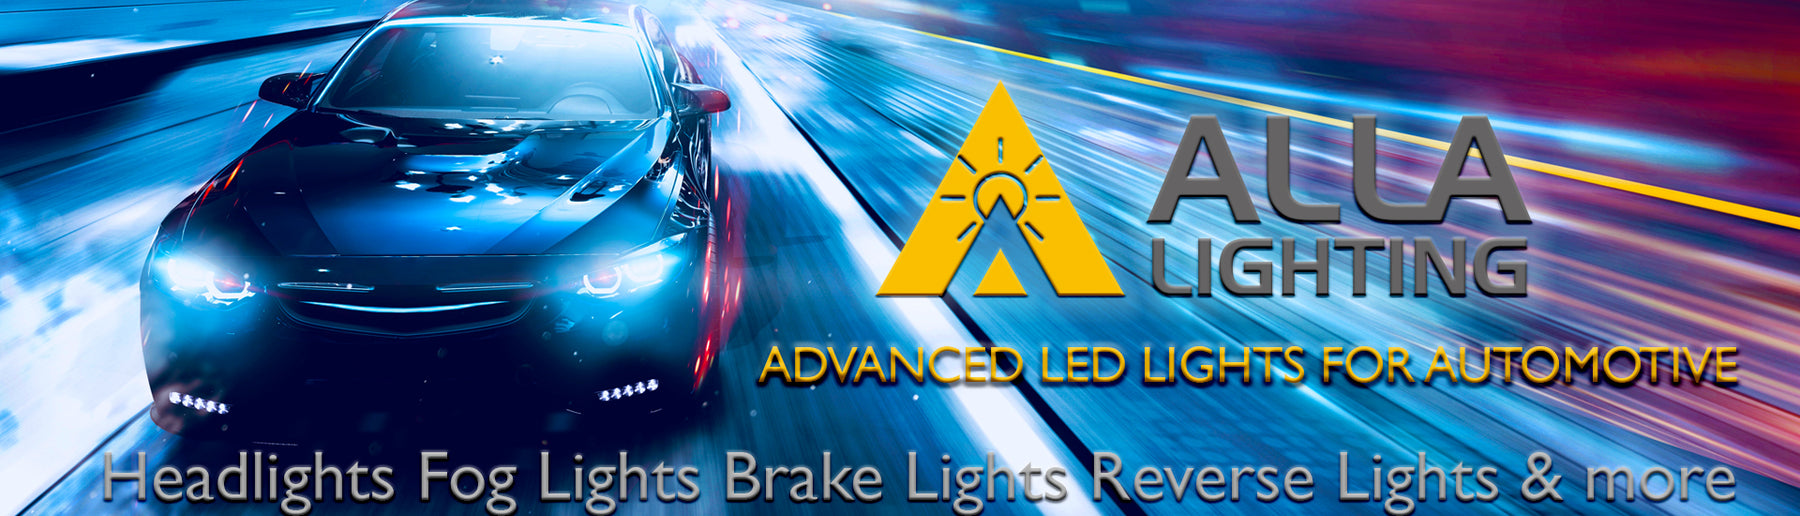 Allalighting Led Lights Bulbs Cars Trucks Motorcycles